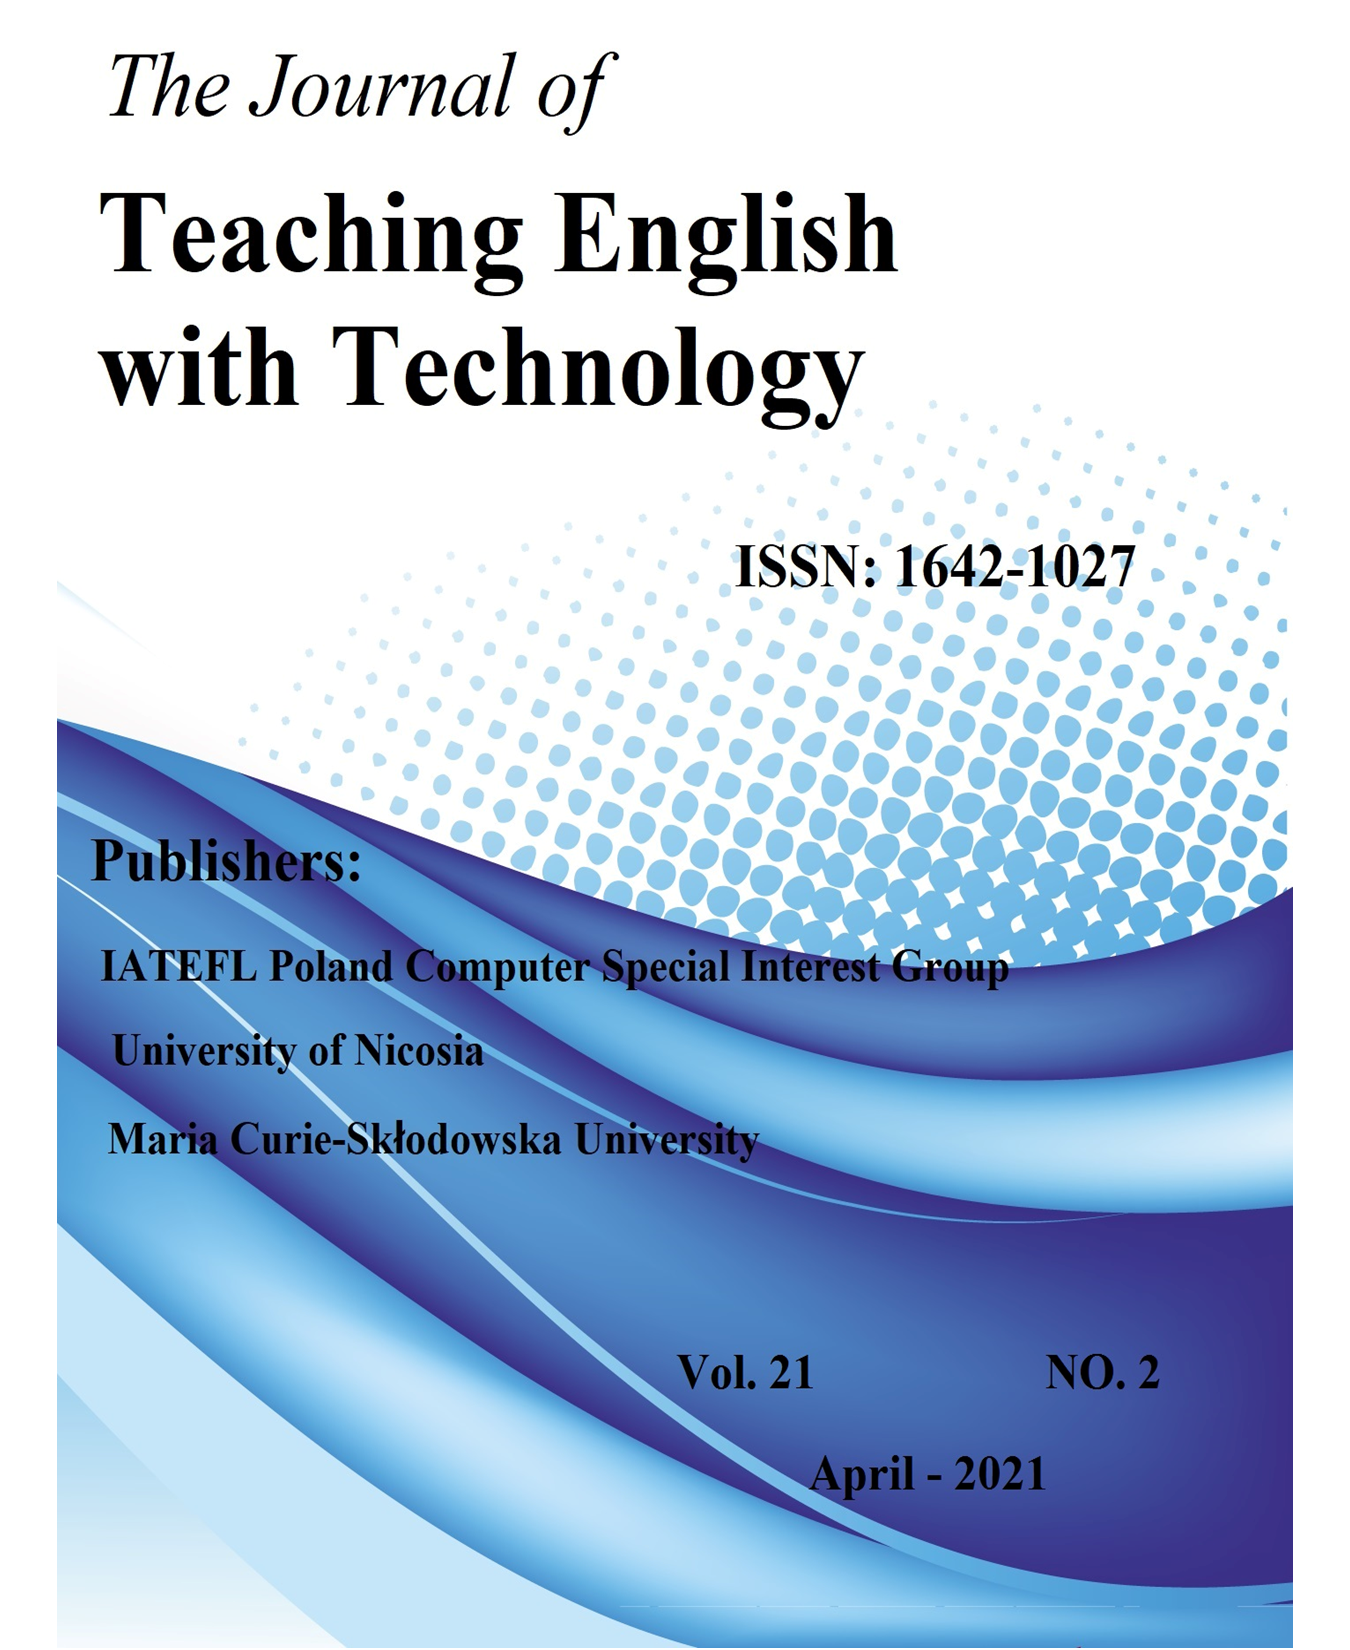 A NARRATIVE INQUIRY INTO IRANIAN EFL TEACHER EDUCATORS' VOICE ABOUT CHALLENGES OF CALL TEACHER EDUCATION